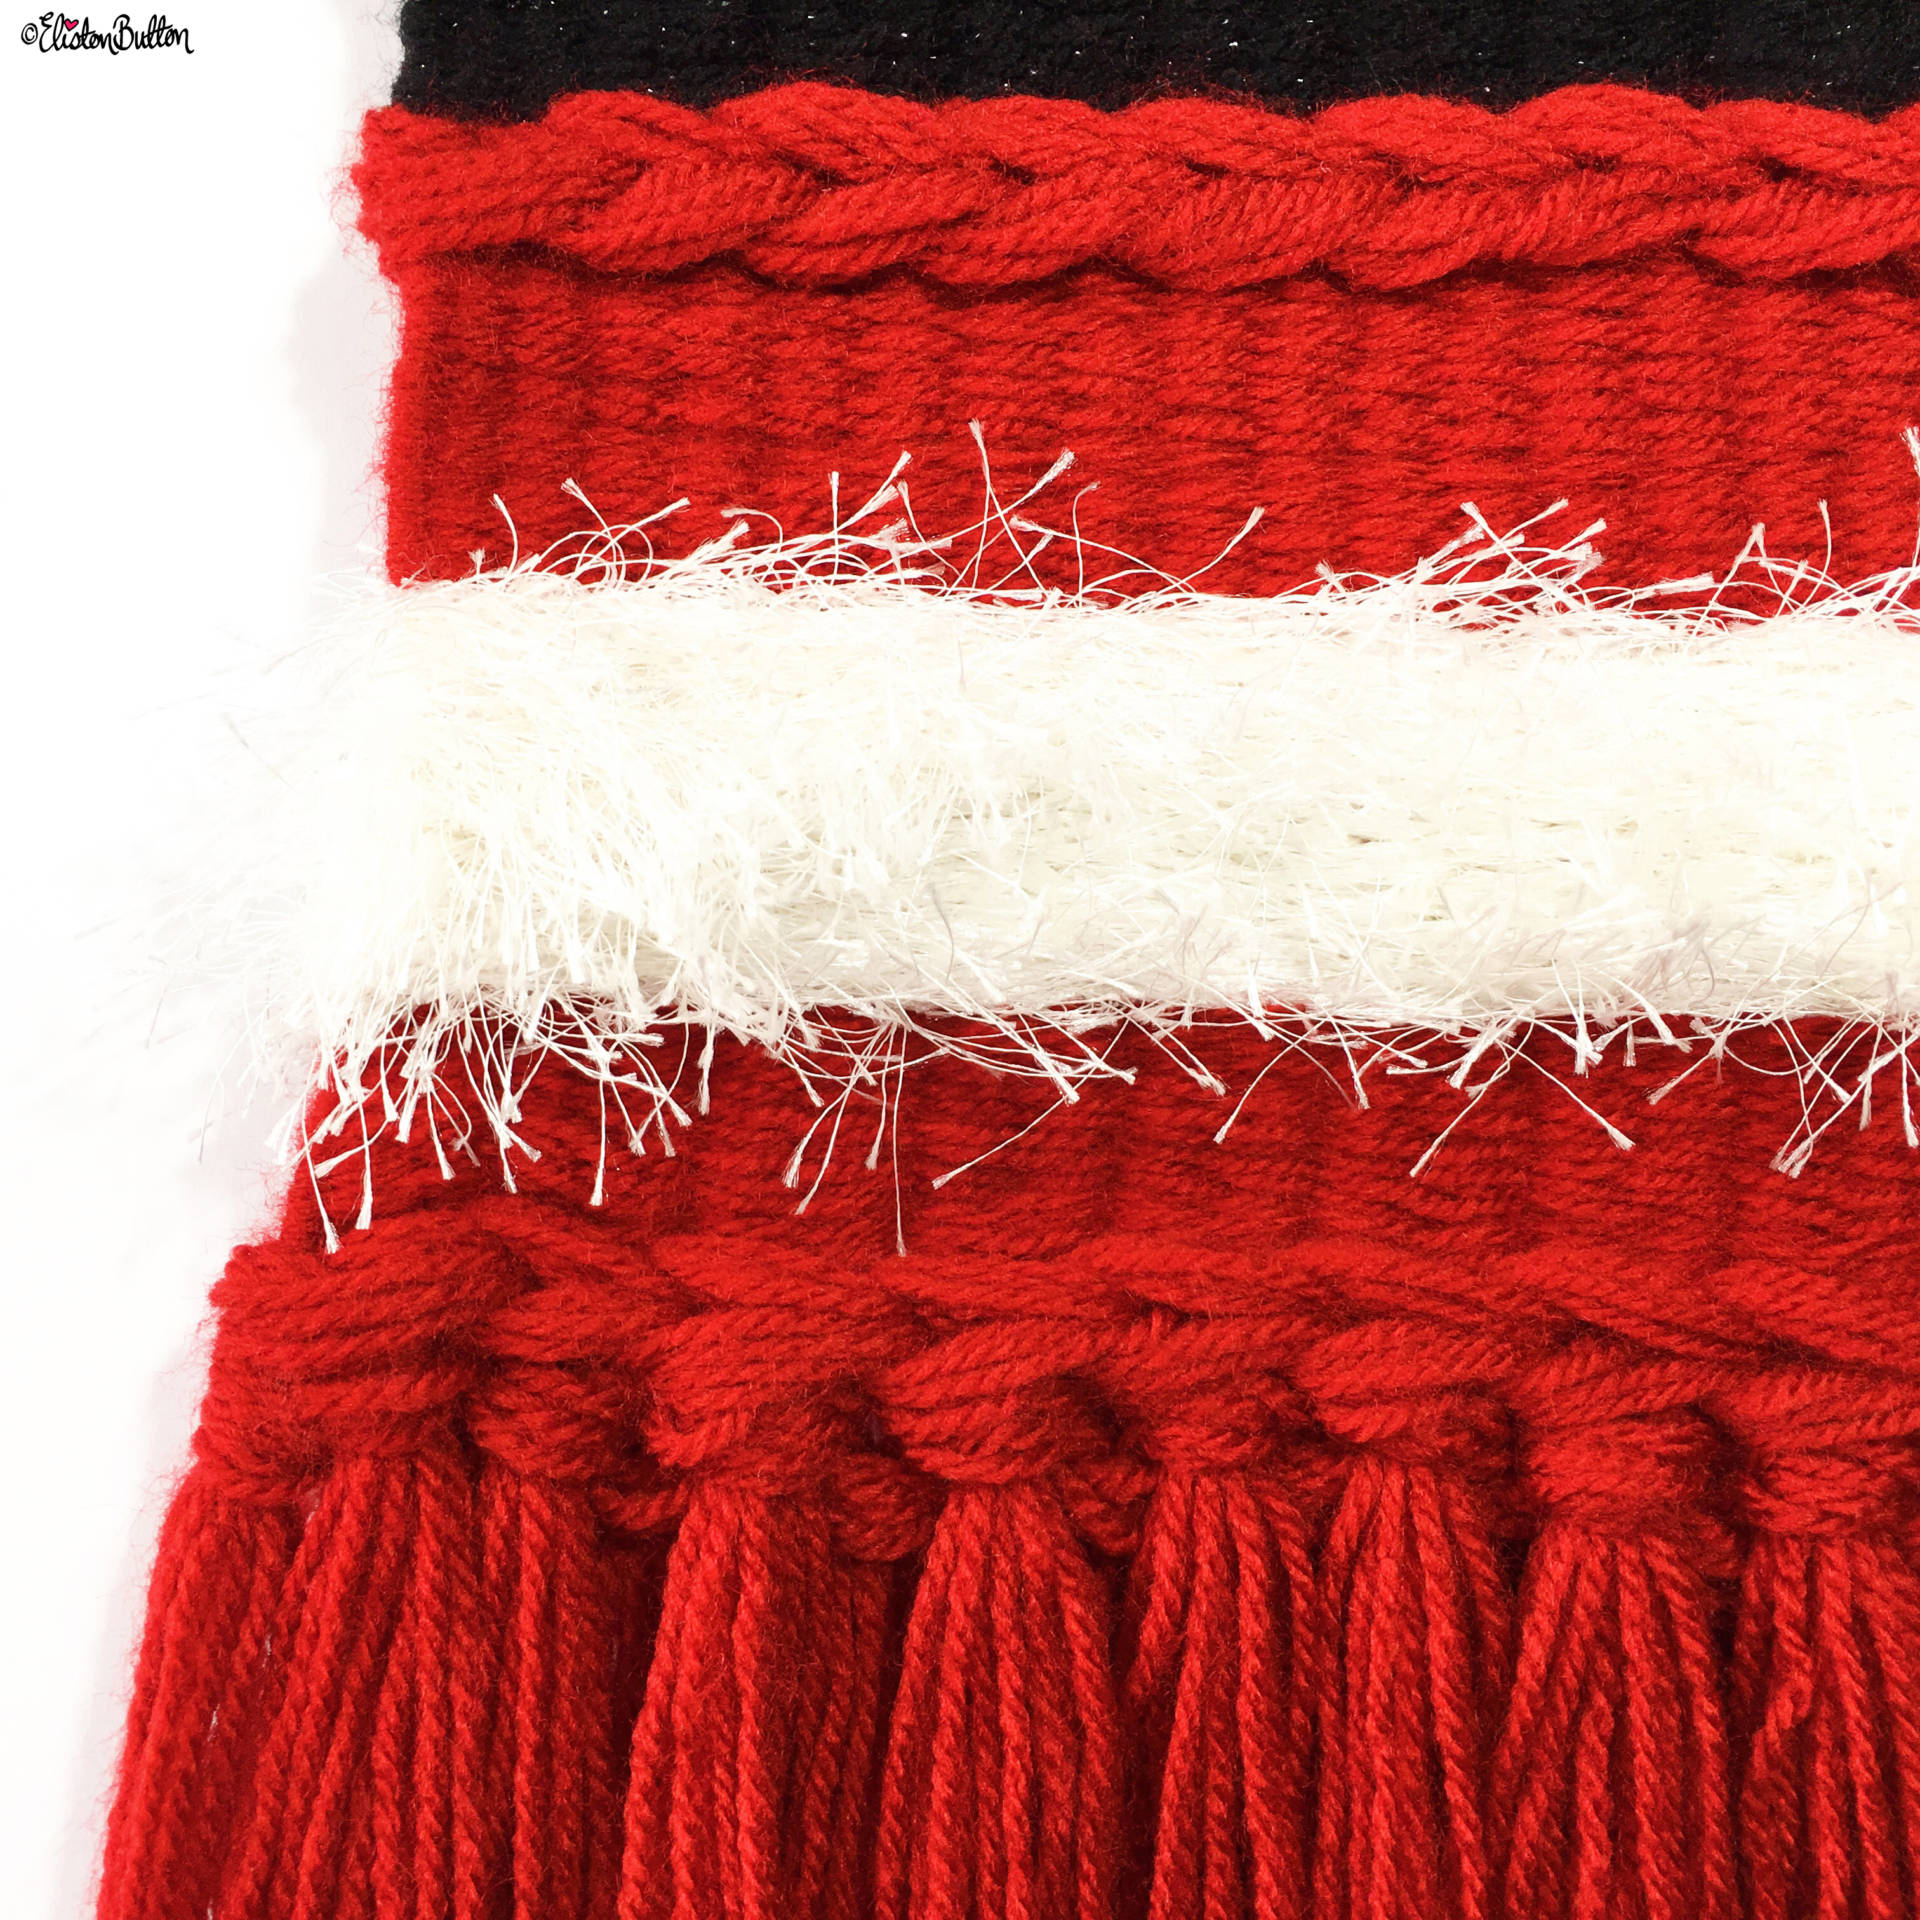 A Festive Santa Inspired Woven Wall Hanging by Eliston Button - For the Love of…Christmas at www.elistonbutton.com - Eliston Button - That Crafty Kid – Art, Design, Craft & Adventure.